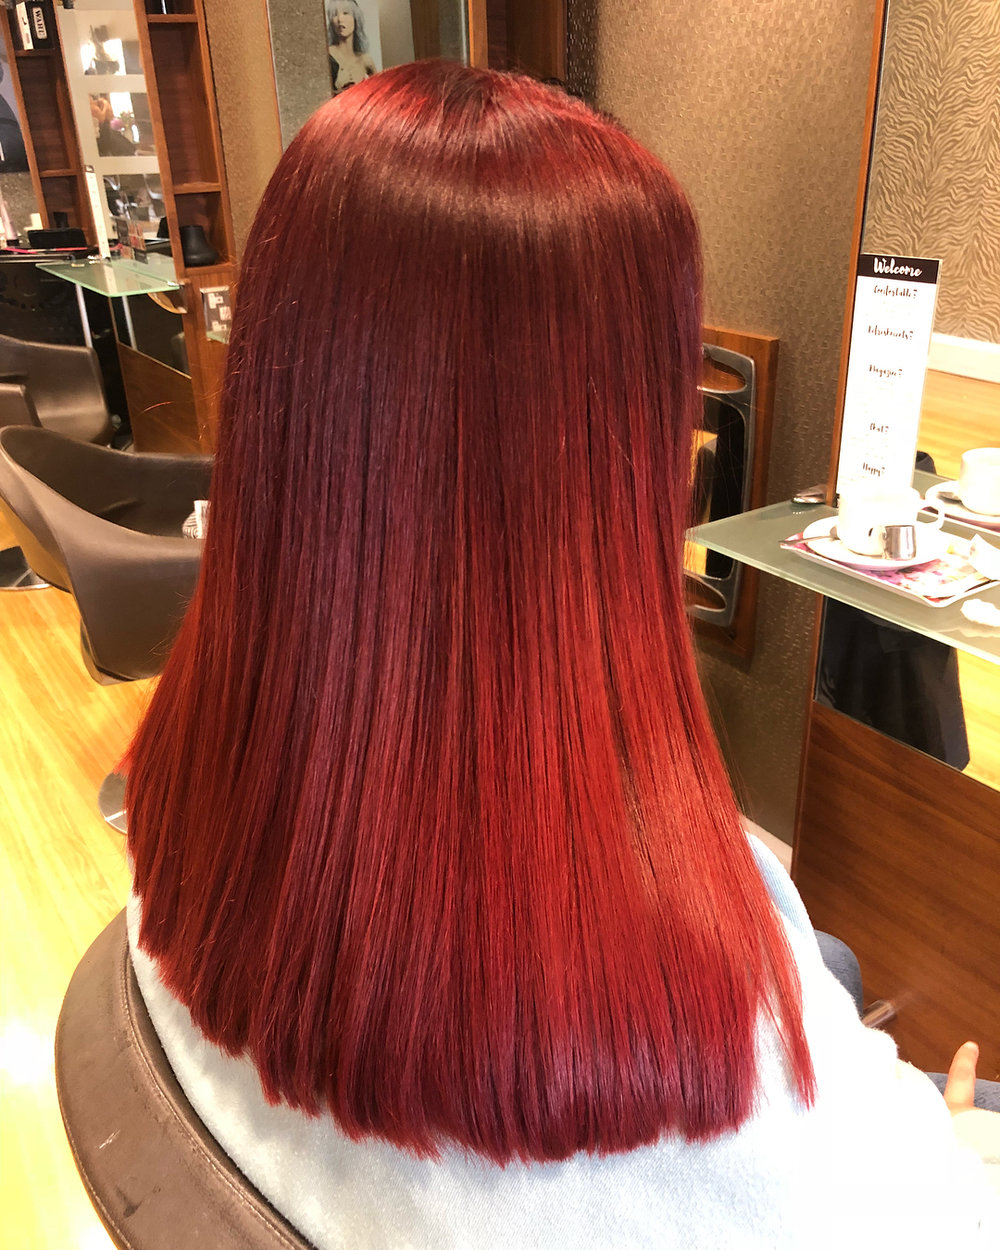 Salon coloured vibrant red hair at Joanne Hairdressing